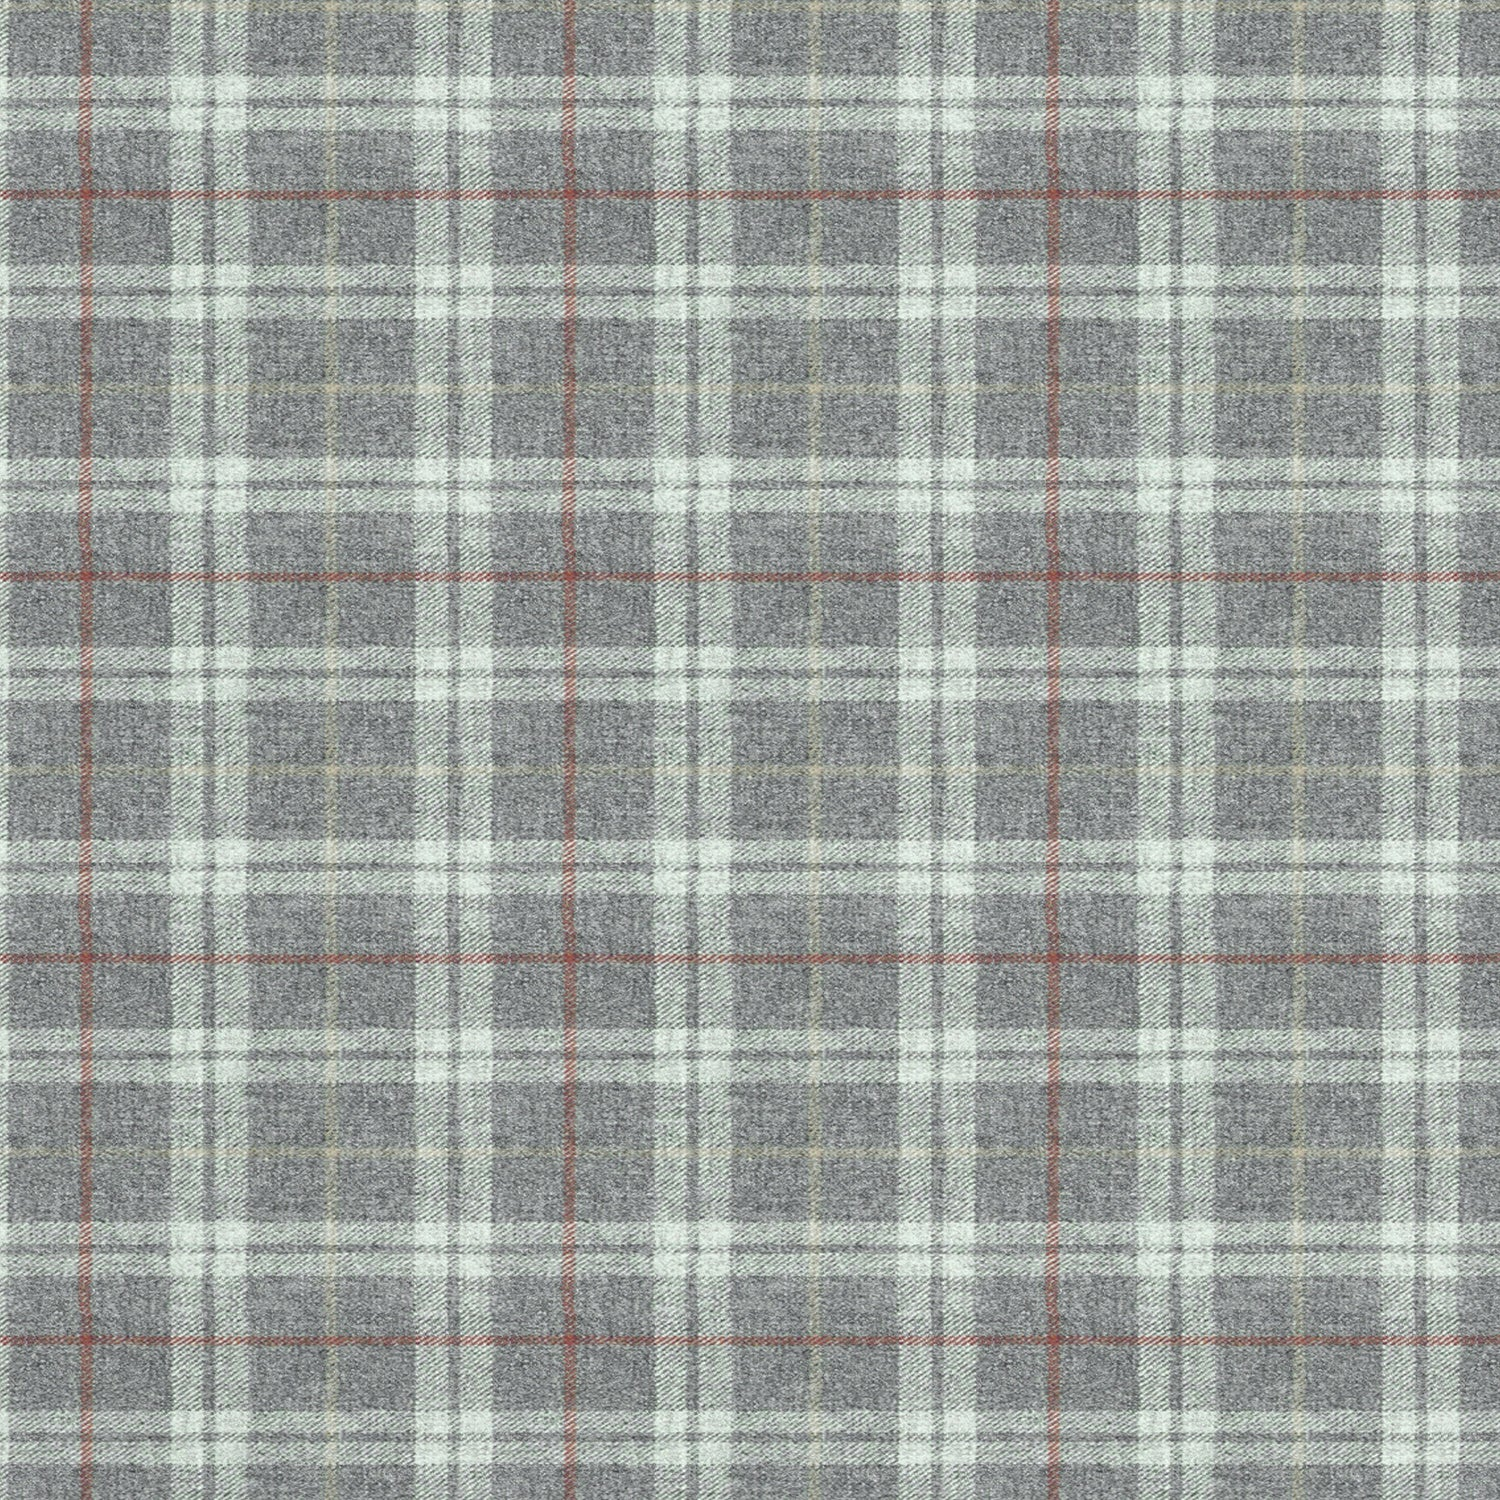 Fabric swatch of a grey Scottish wool plaid check fabric for curtains and upholstery